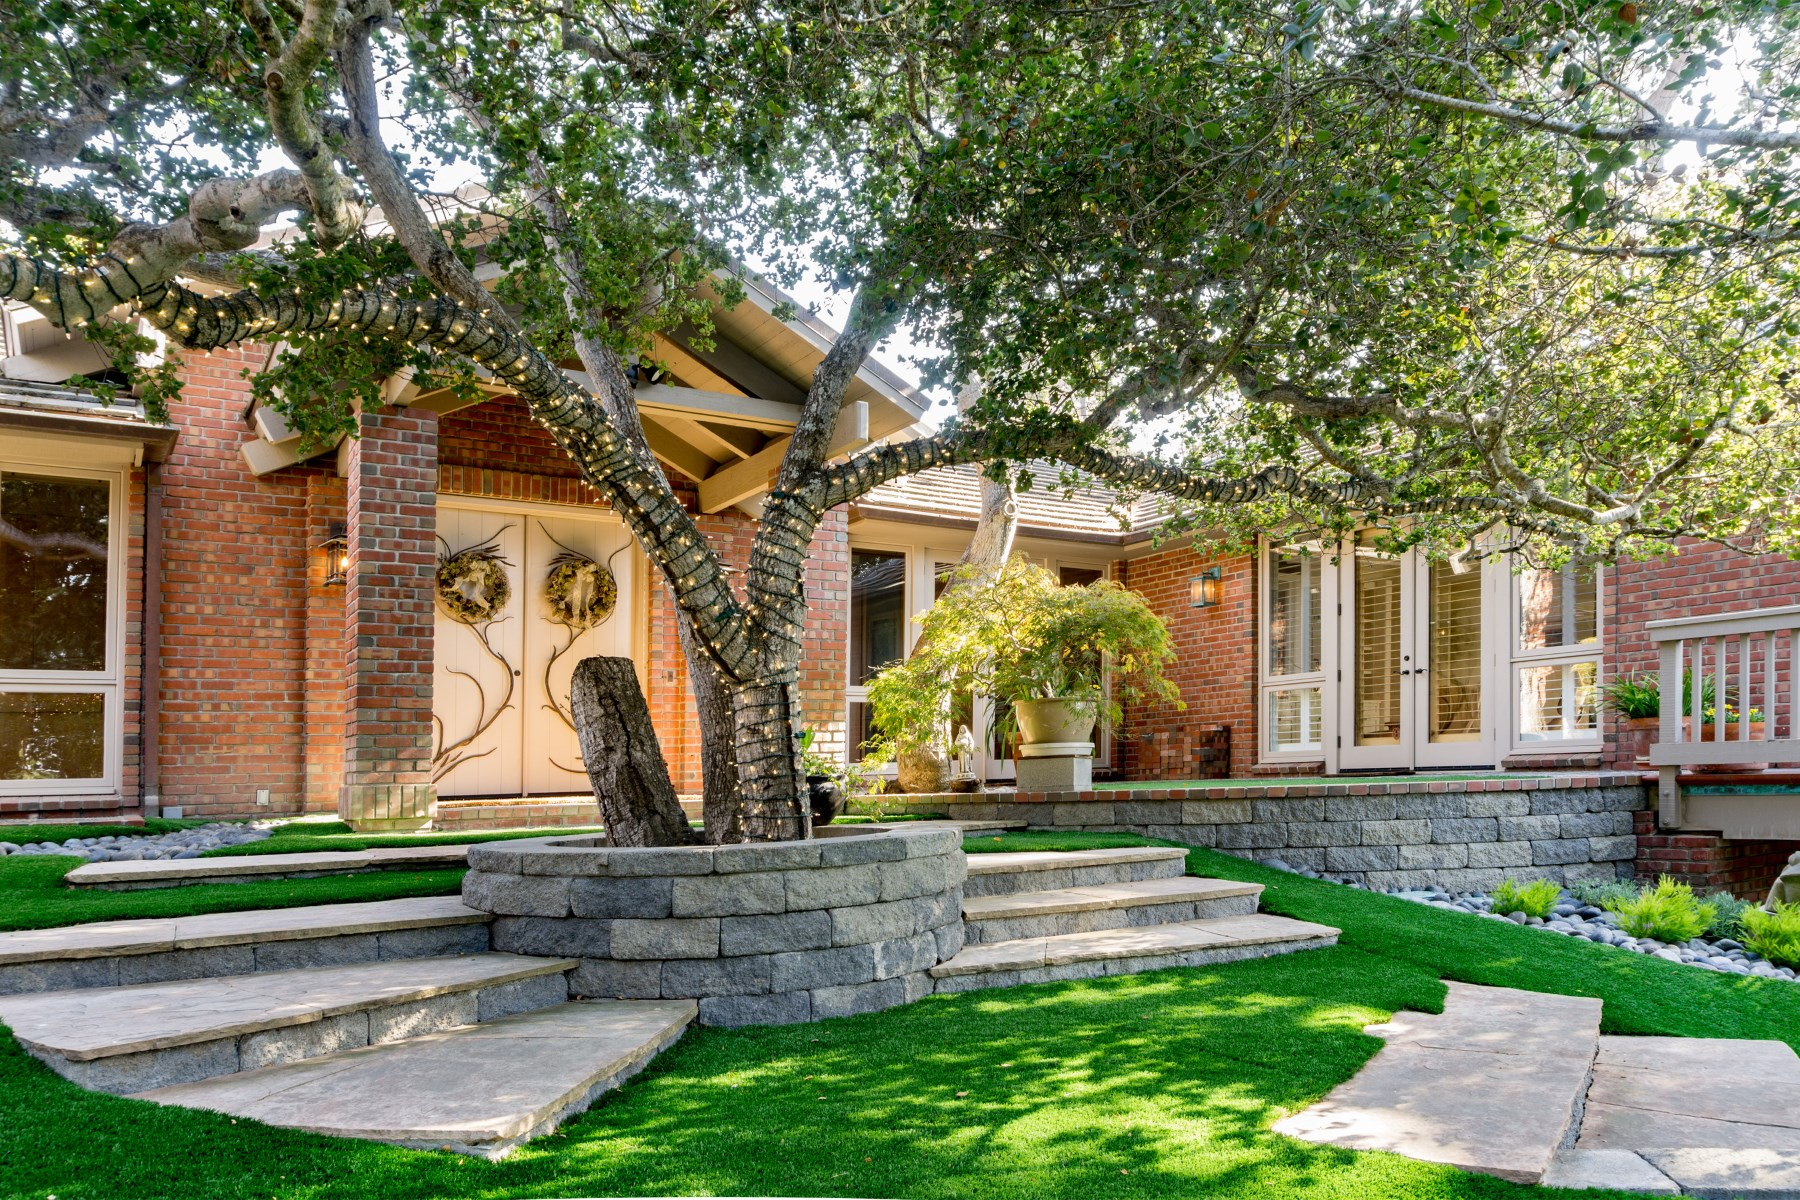 Single Family Home for Sale at Elegant and Private 1102 Alta Mesa Rd Monterey, California 93940 United States